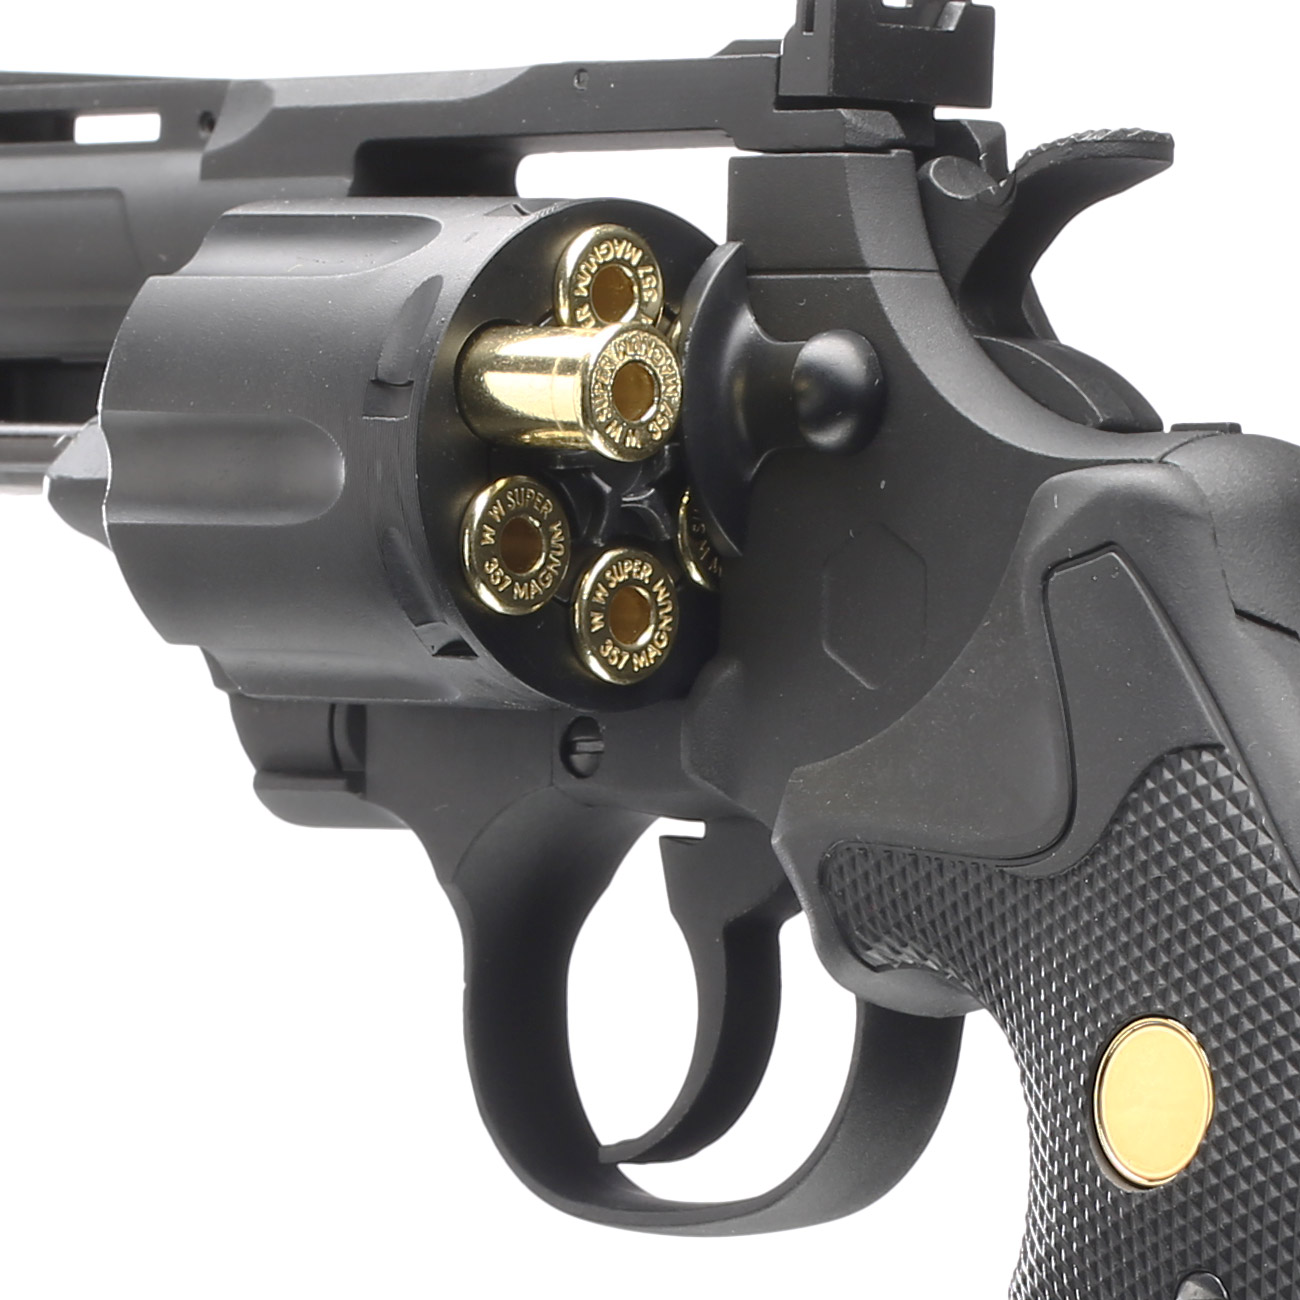 King Arms .357 Magnum Custom I 4 Zoll Revolver Vollmetall CO2 6mm BB schwarz 6